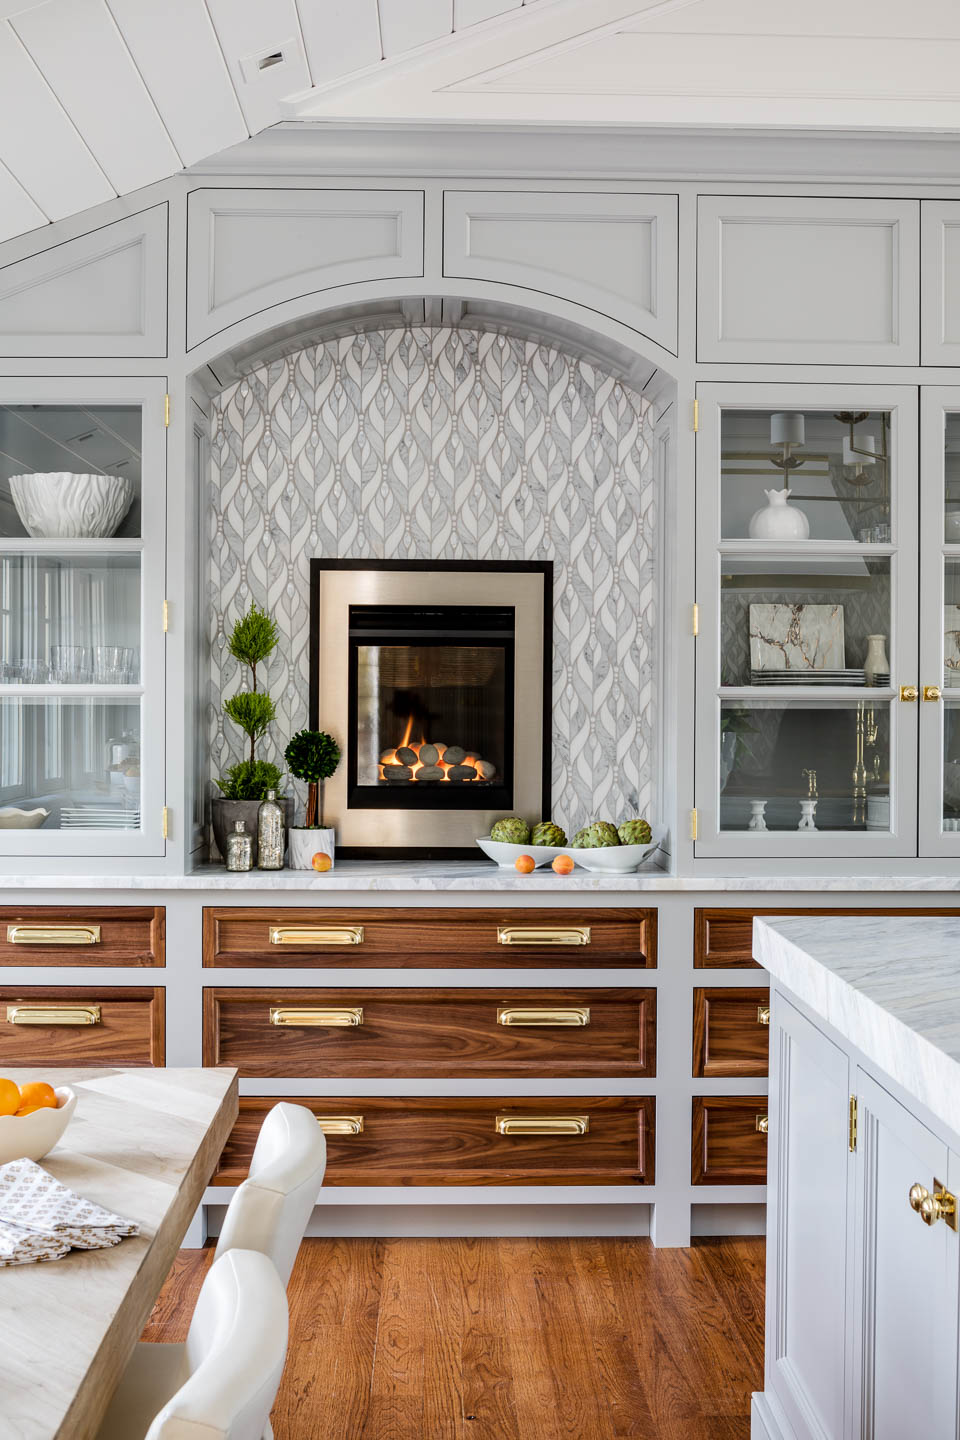 Digs, Digs Design, Matunuck, Matunuck Beach, Beach Design, Rhode Island Interior Design, Interior Design, Renovation, Beach Design, Beach Kitchen, Kitchen, Kitchen Design, Coastal Living, Butcher Block Counter, Tile Backsplash, Kitchen Fireplace, Built-in Storage, Banquette Seating